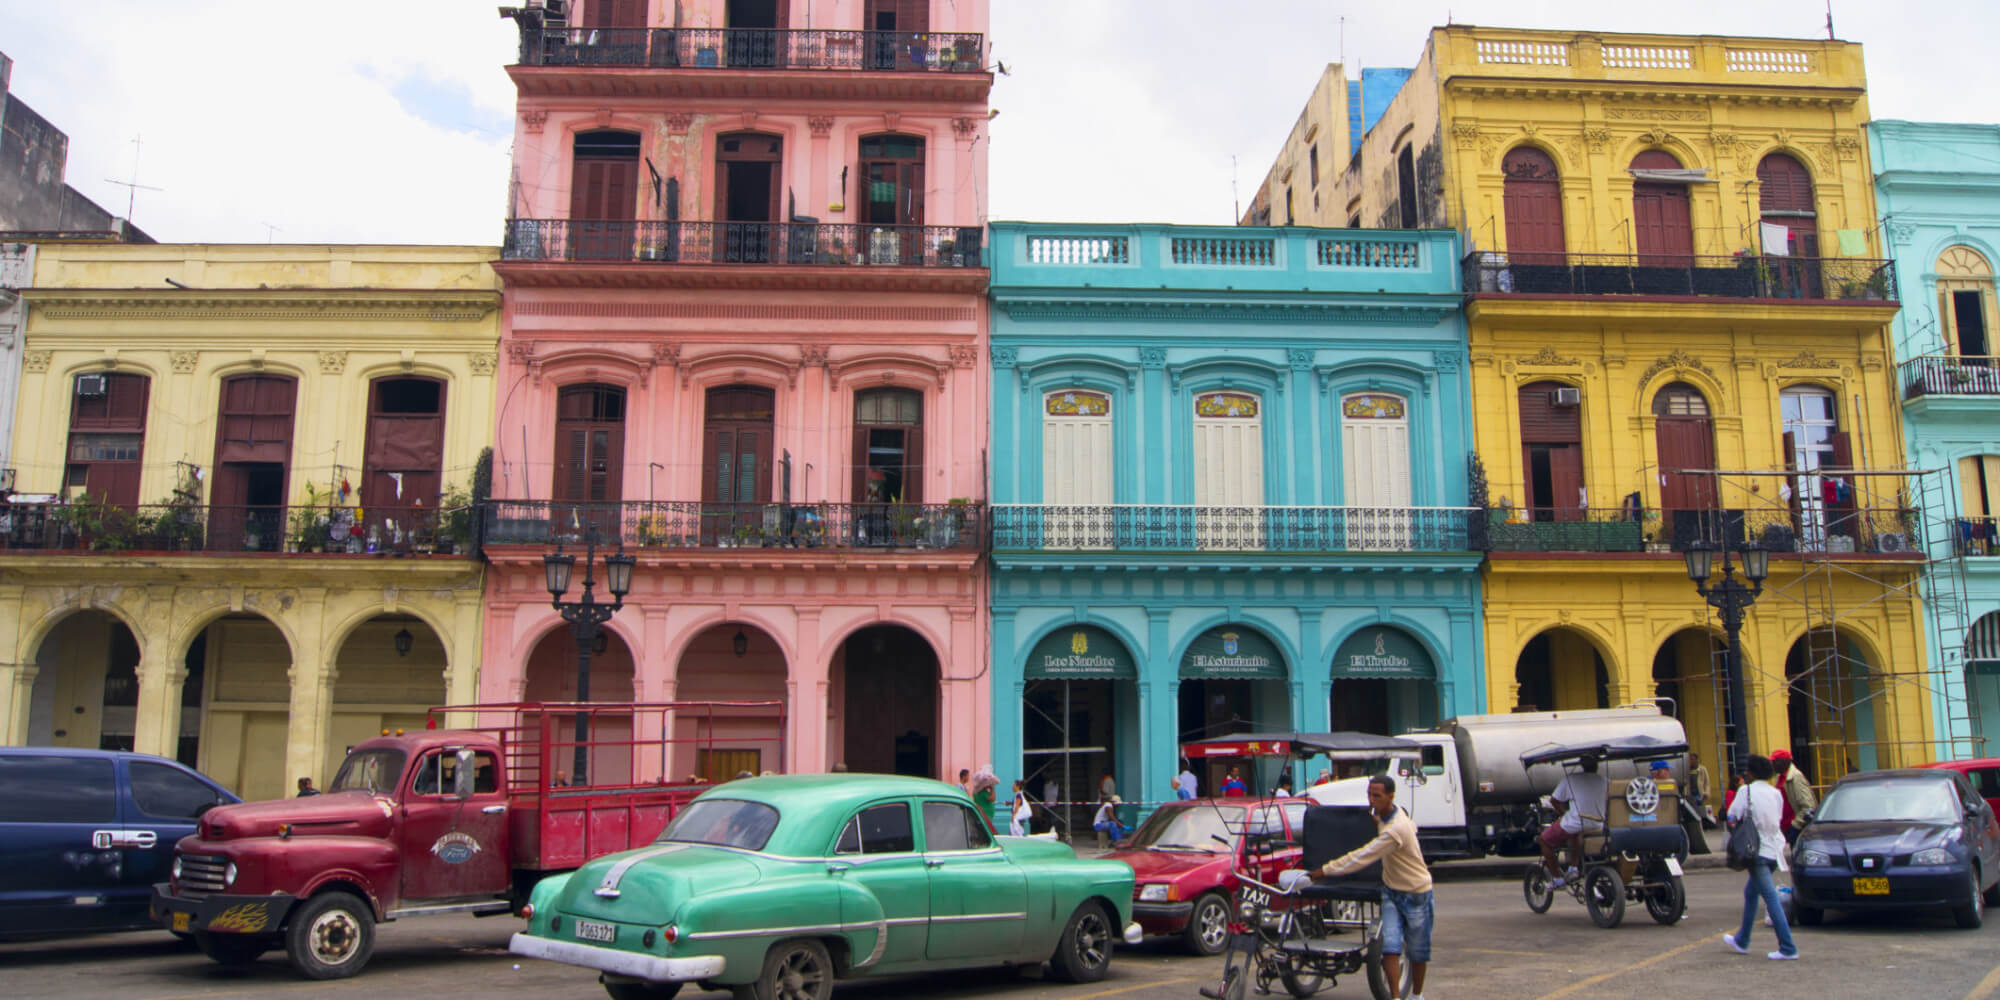 2017 Travel To Cuba You Can Still Visit Cuba Despite The New Travel Warning